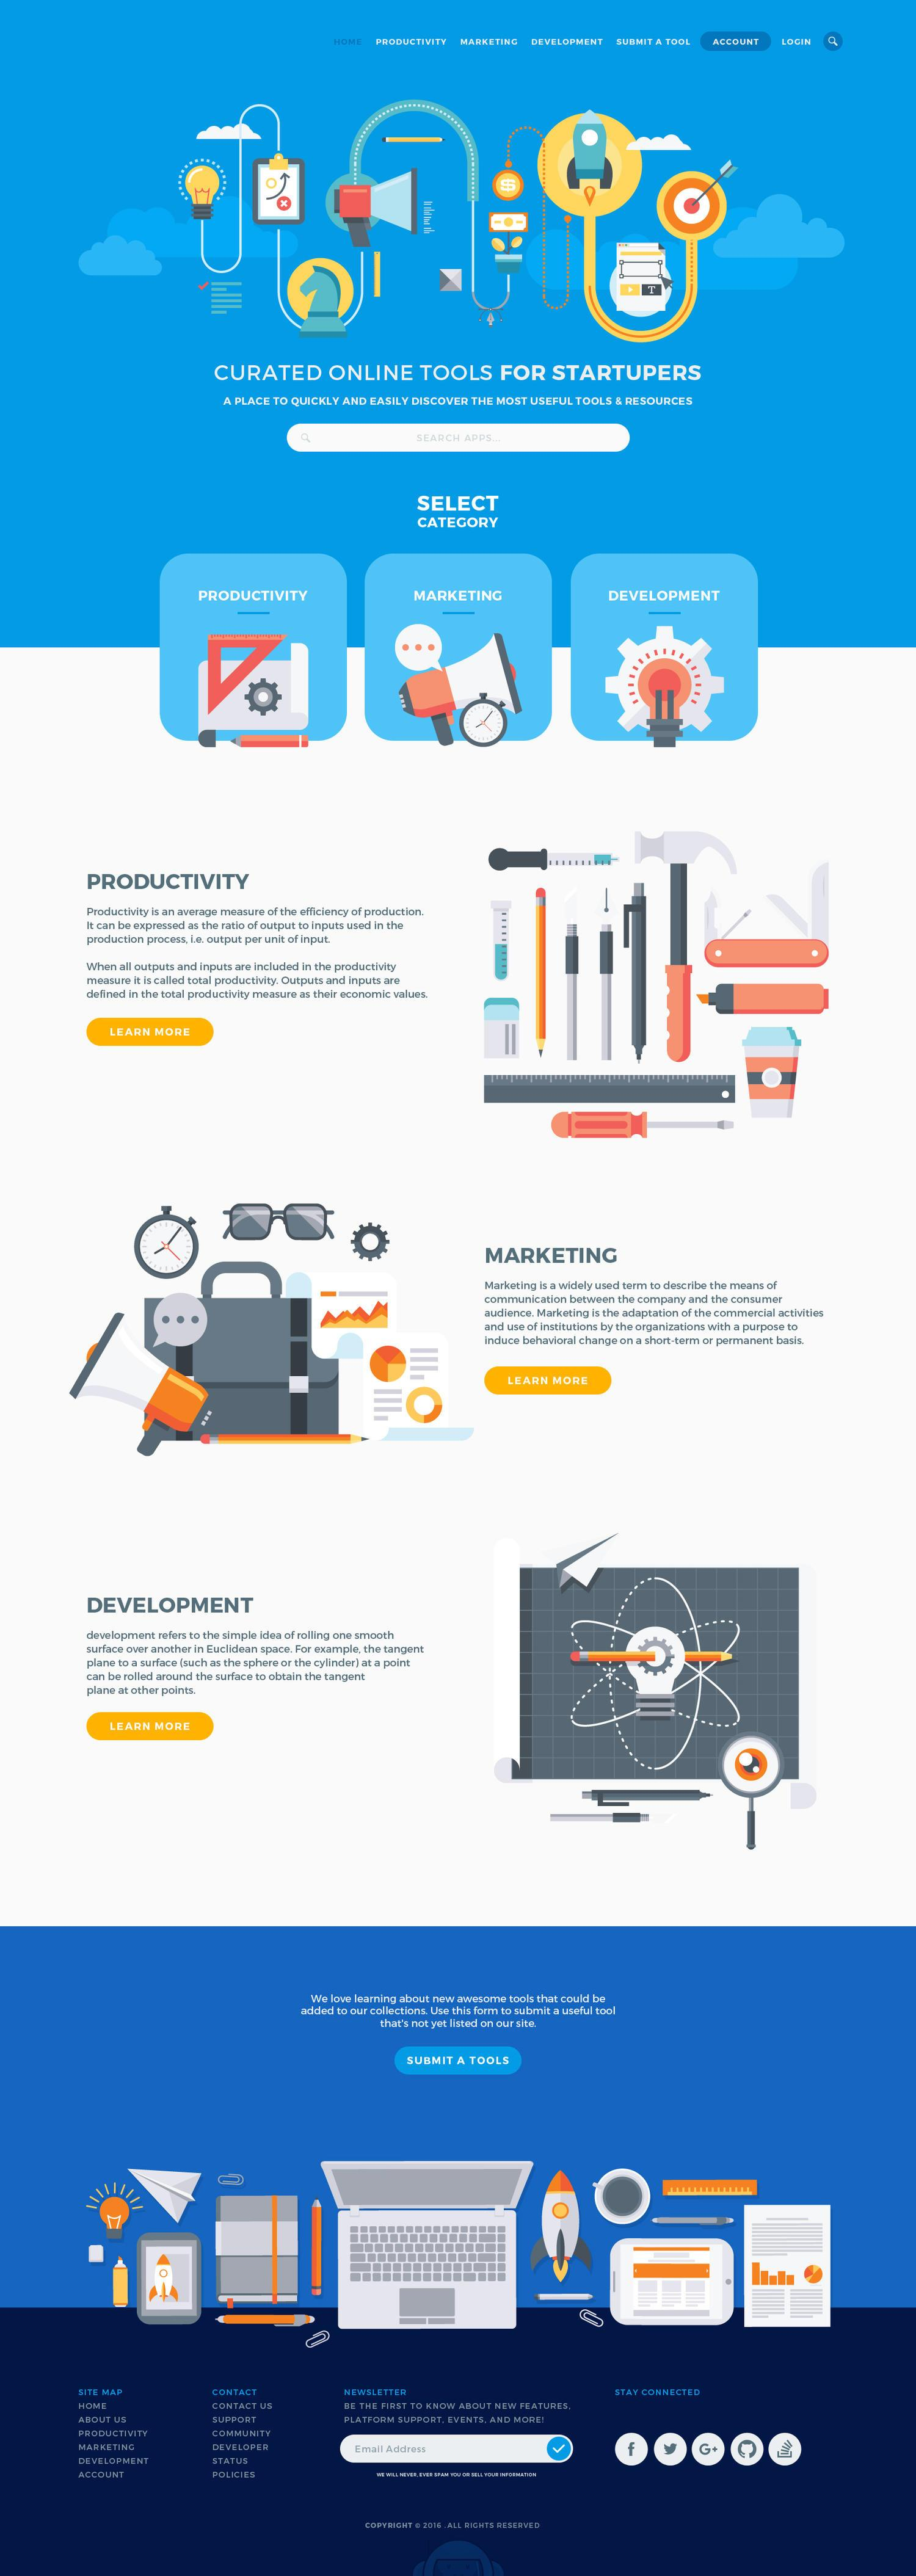 Premium Professional / Flat Style Homepage Design PSD by vector_factory - 103473